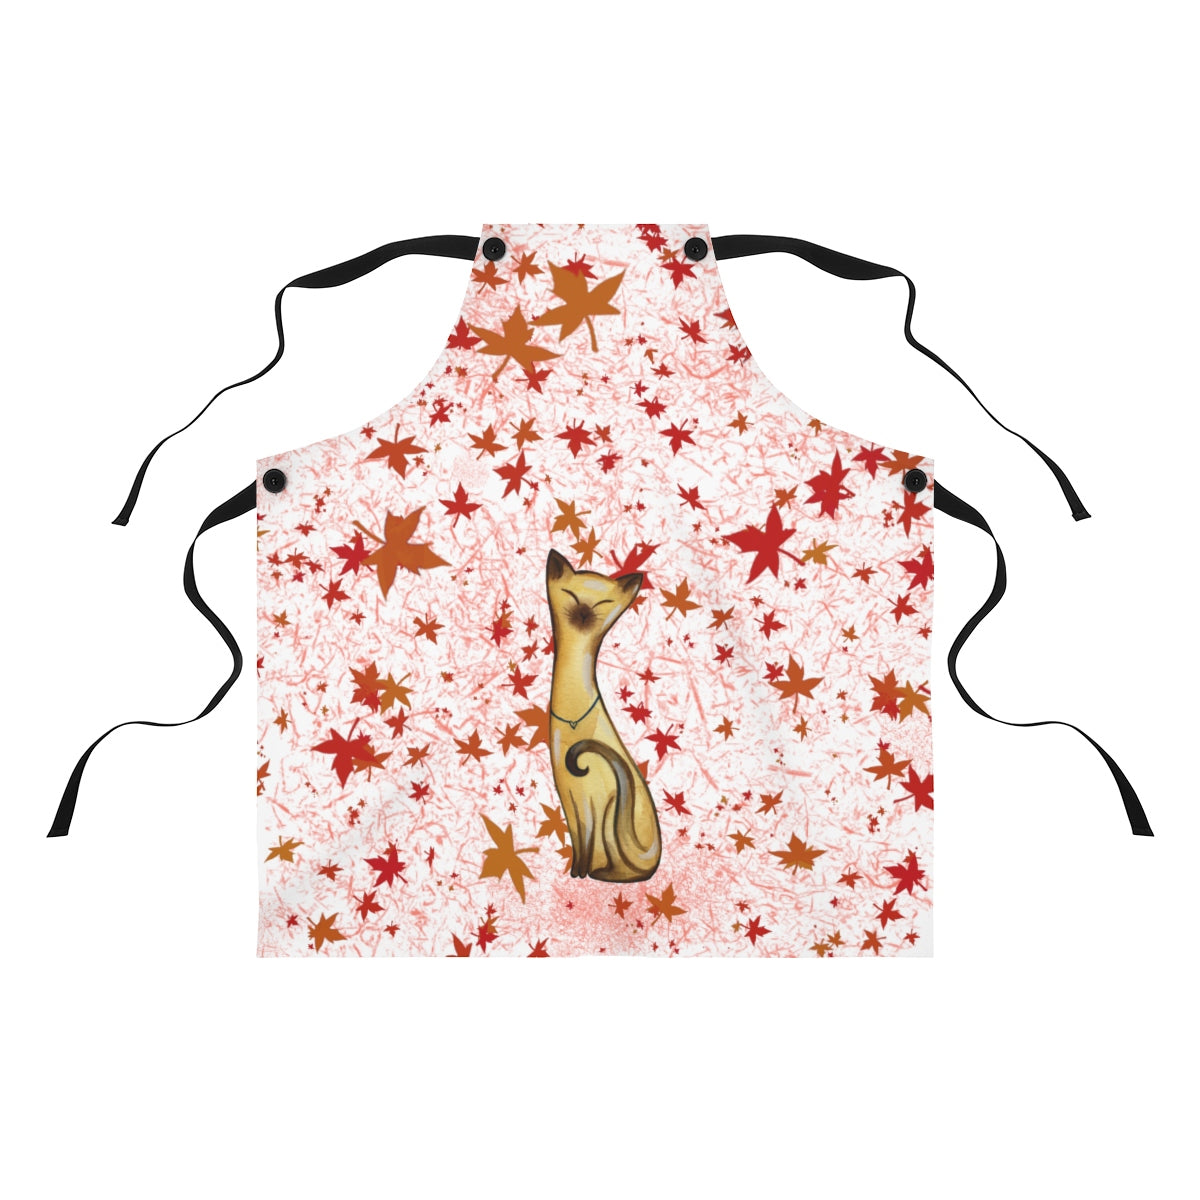 apron with black straps and fall leaves with siamese cat design